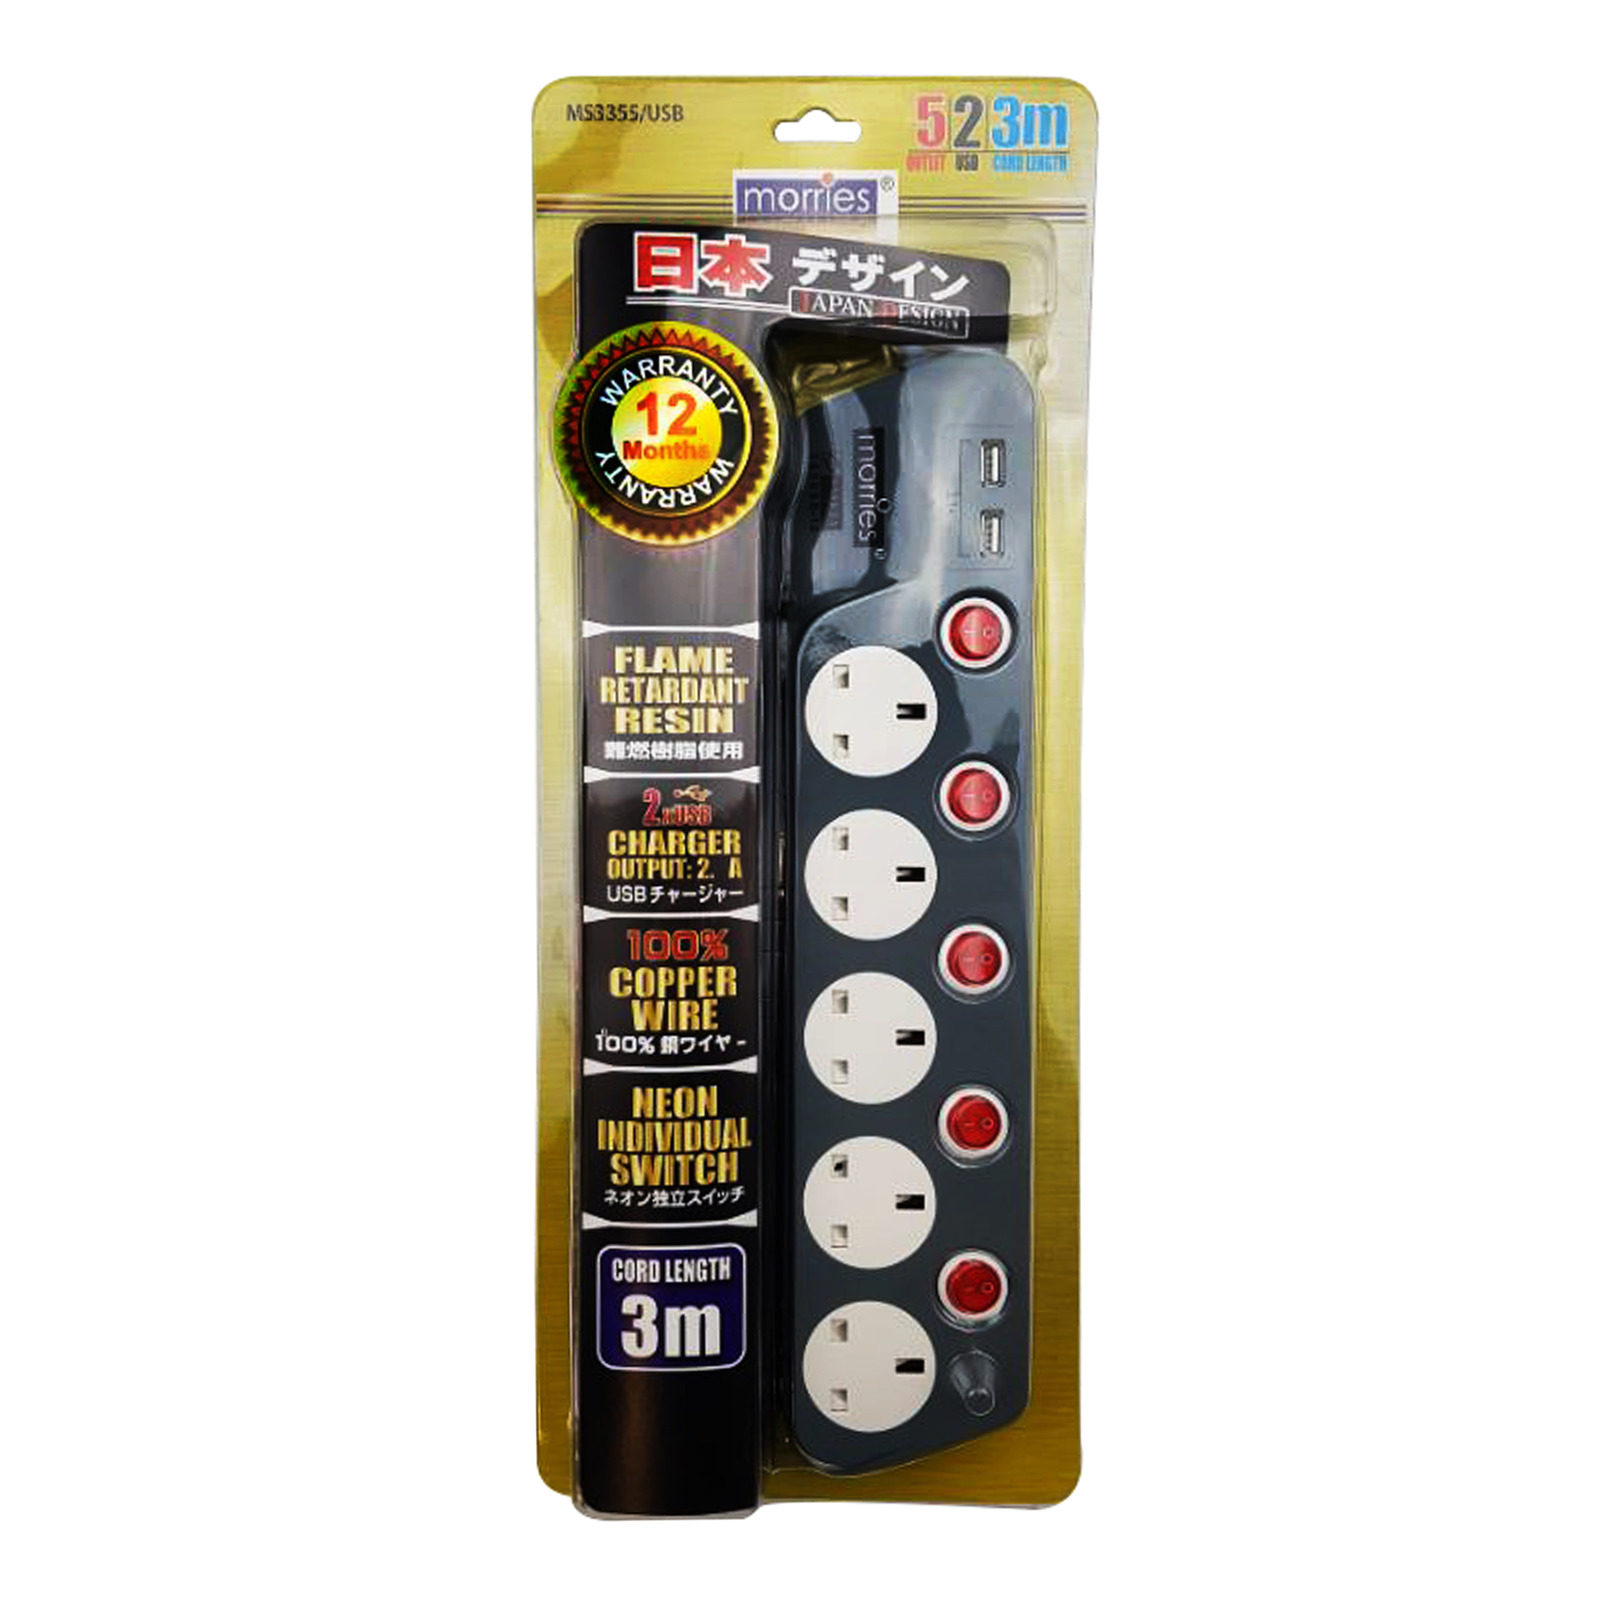 Morries Extension Cord - 5 Way with USB (MS3355-USB)